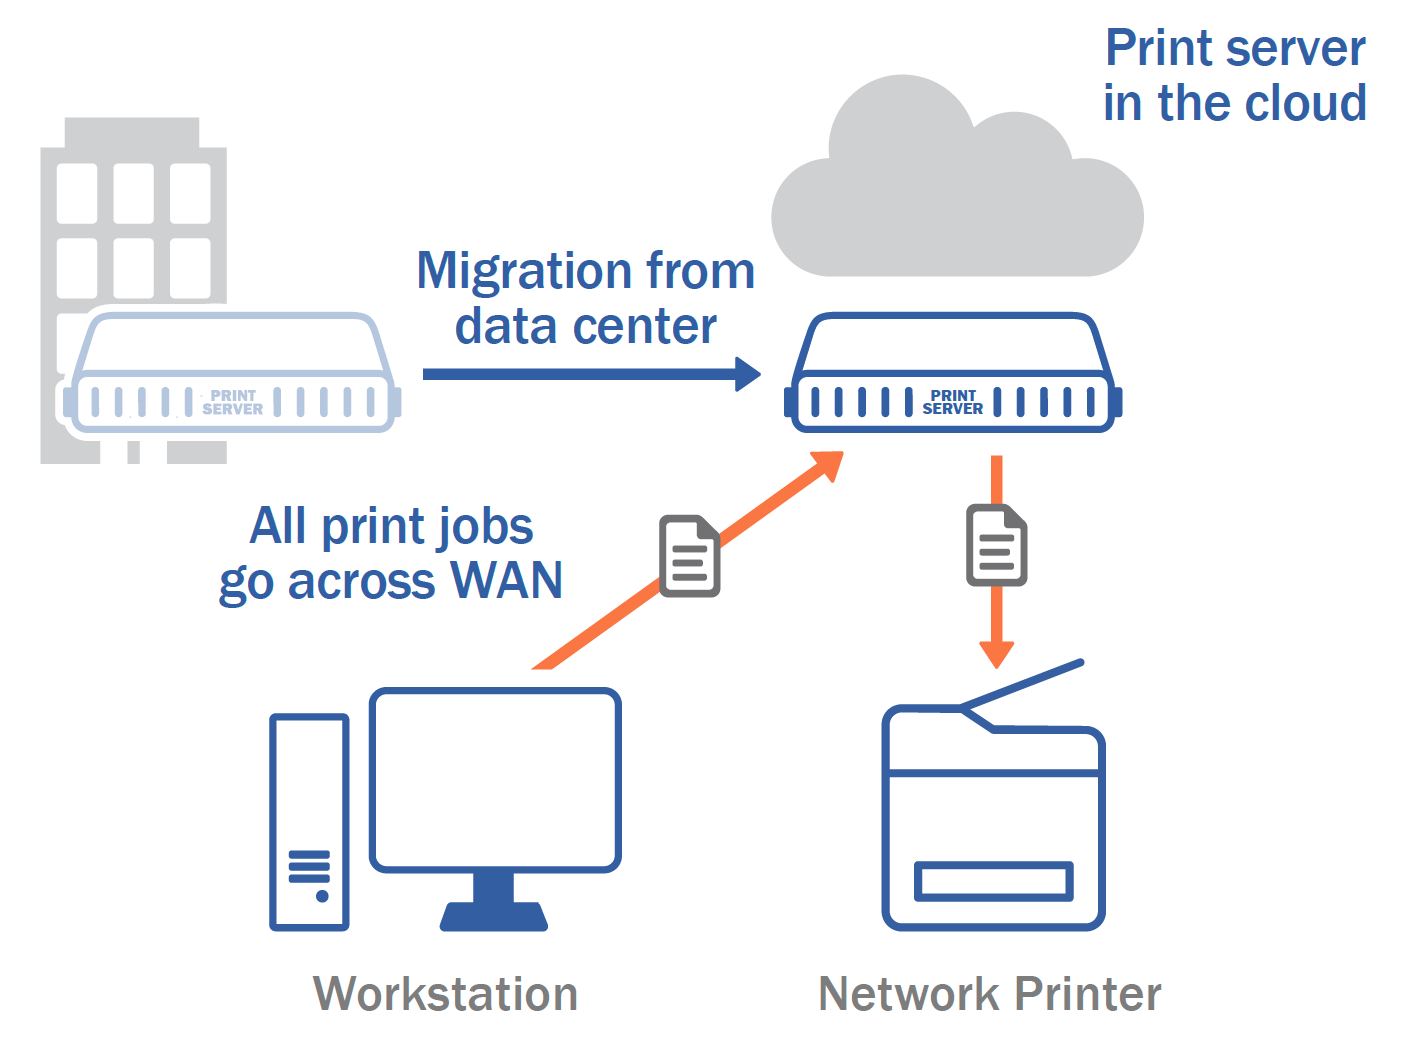 Print Server in the Cloud